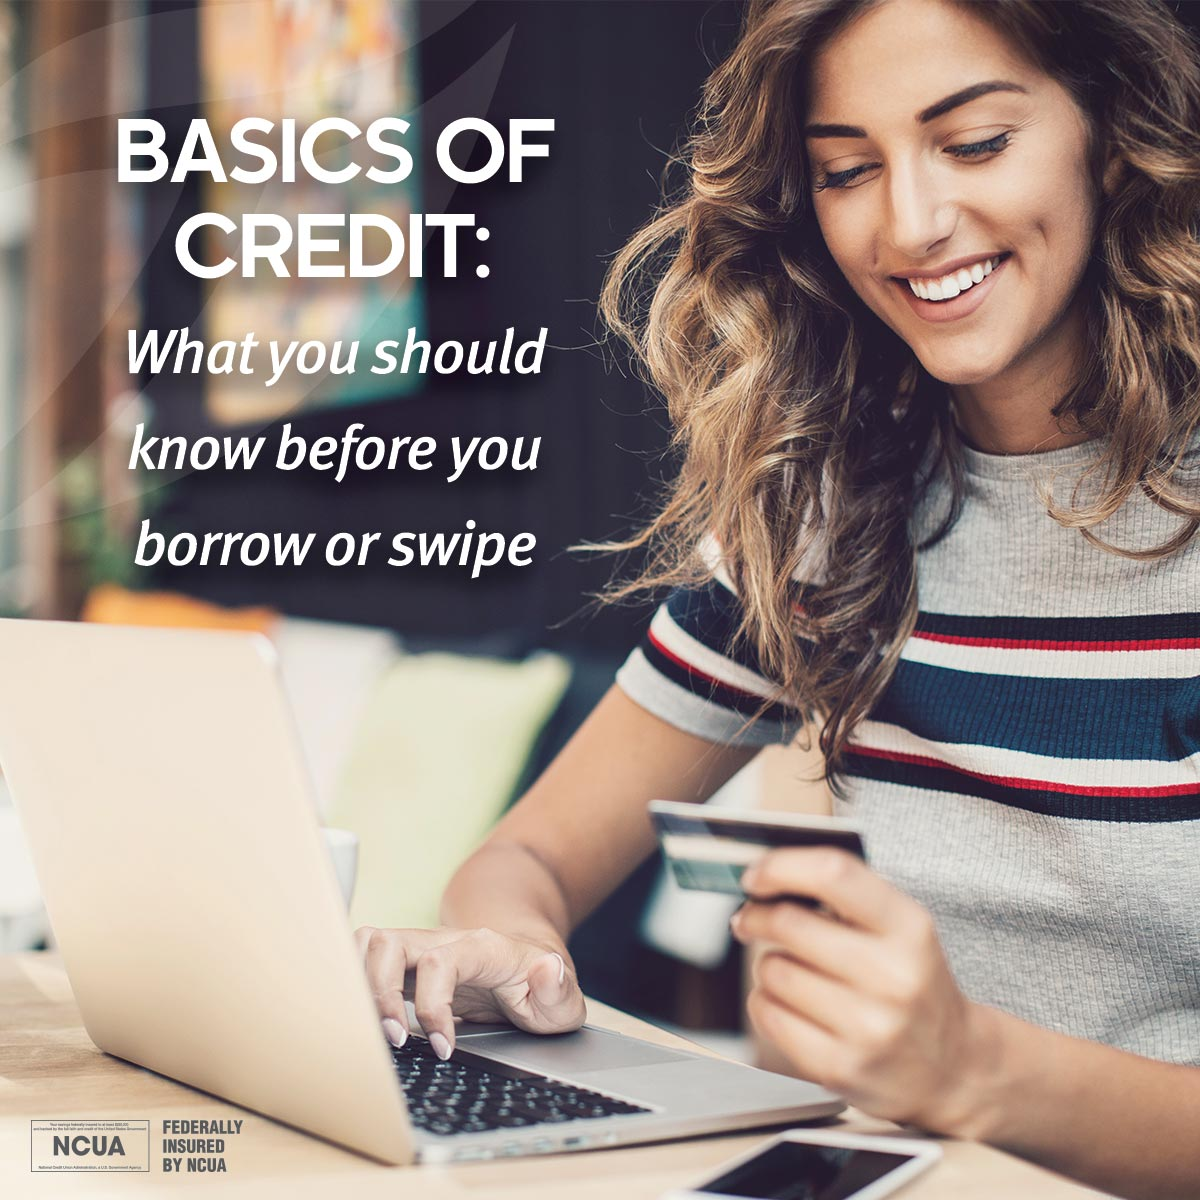 Basics of Credit - What to Know Before You Borrow